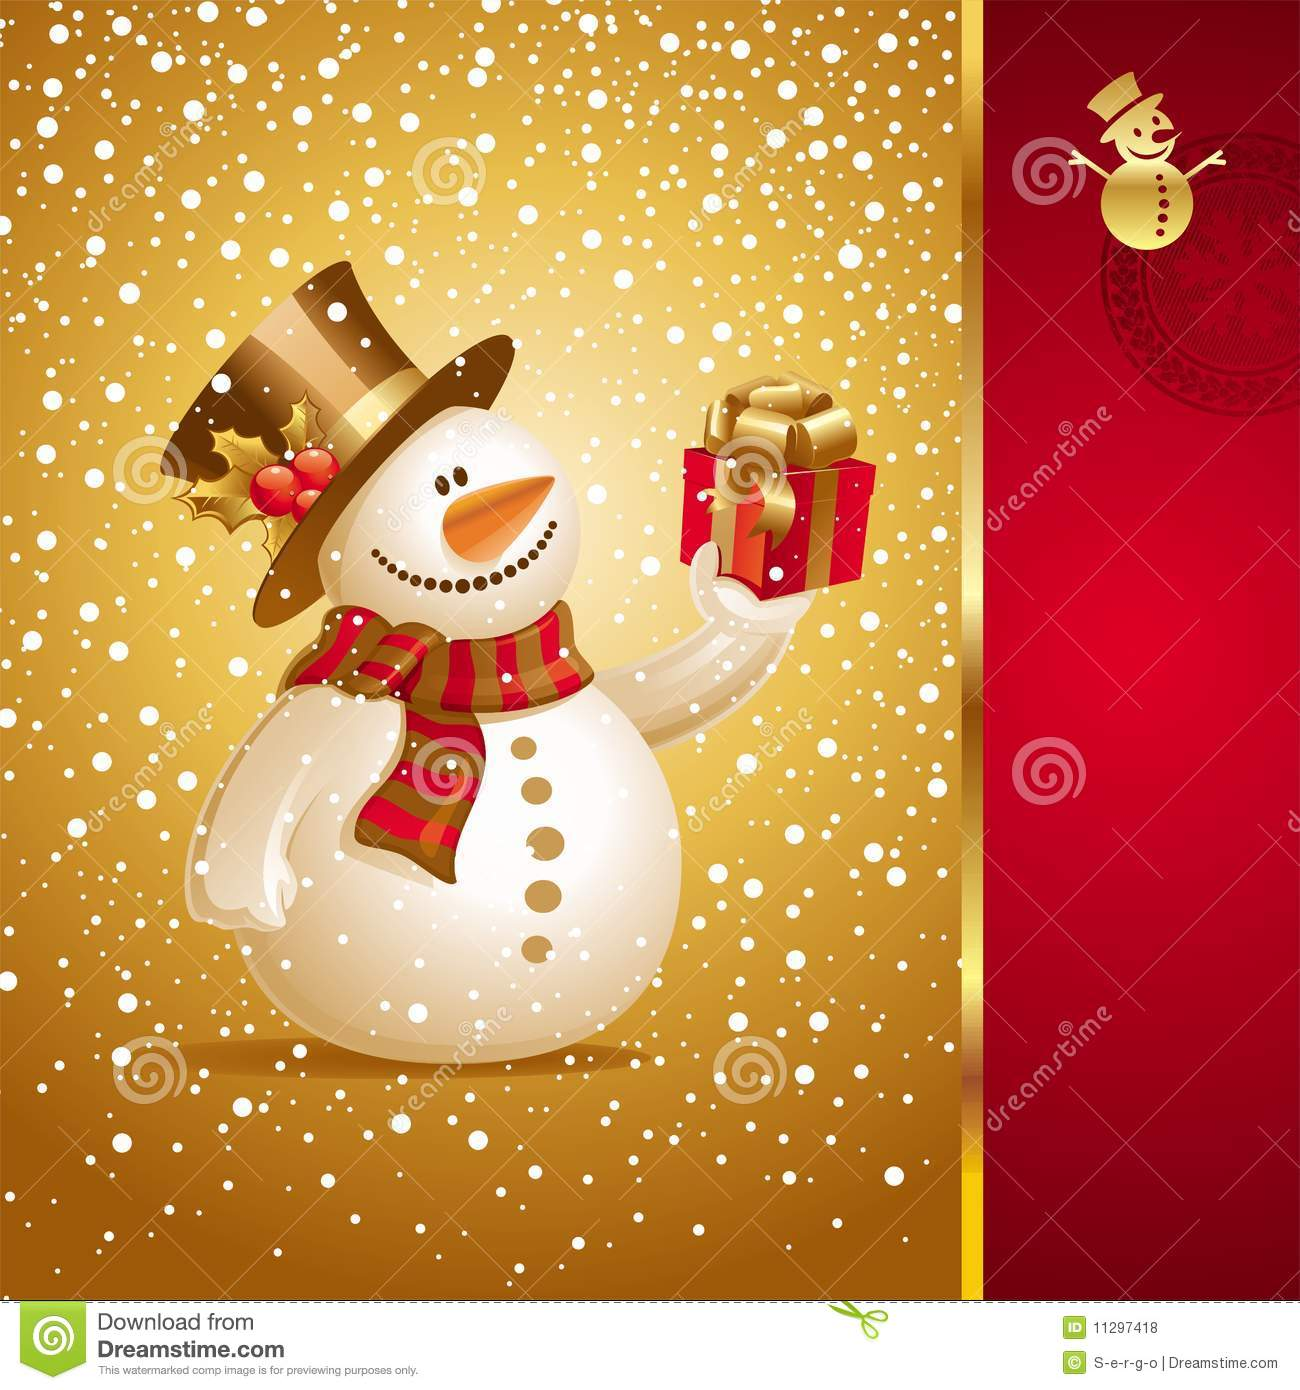 Christmas letter g with santa claus cap stock photo 169 vladvitek - Christmas Card With Smiling Snowman Royalty Free Stock Photos